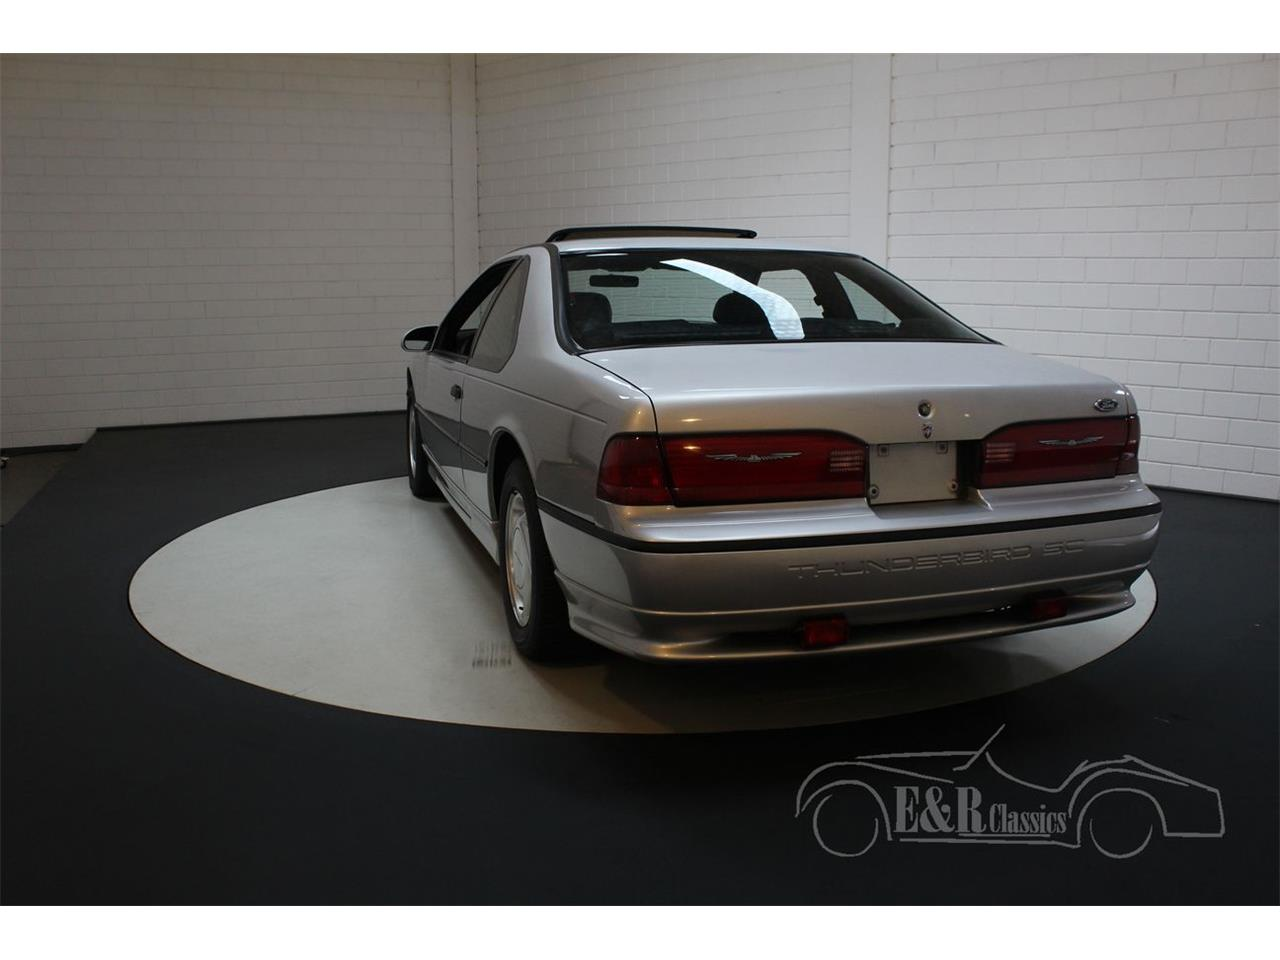 1992 Ford Thunderbird (CC-1389869) for sale in Waalwijk, Noord Brabant